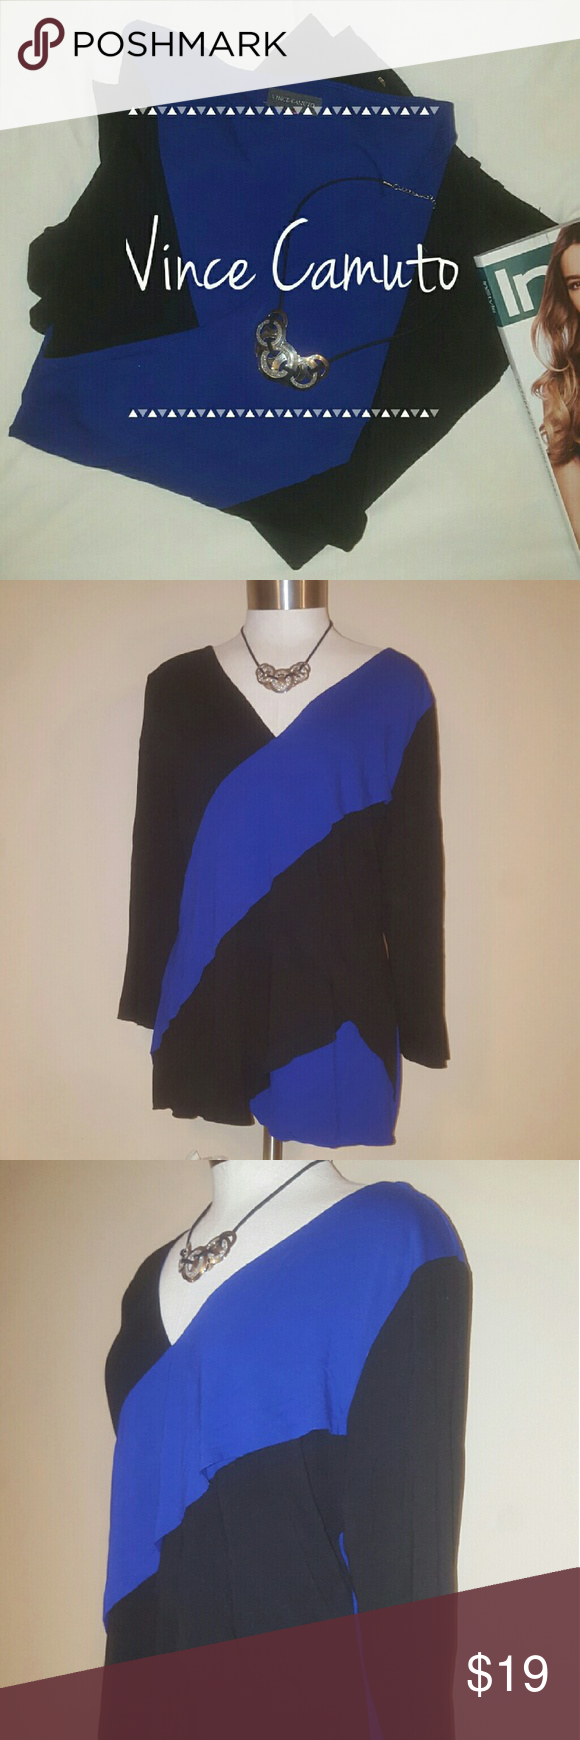 Flattering Vince Camuto Blouse Layered/tiered Blue and black blouse Size tag is missing however it fits like an XL Vince Camuto Tops Blouses